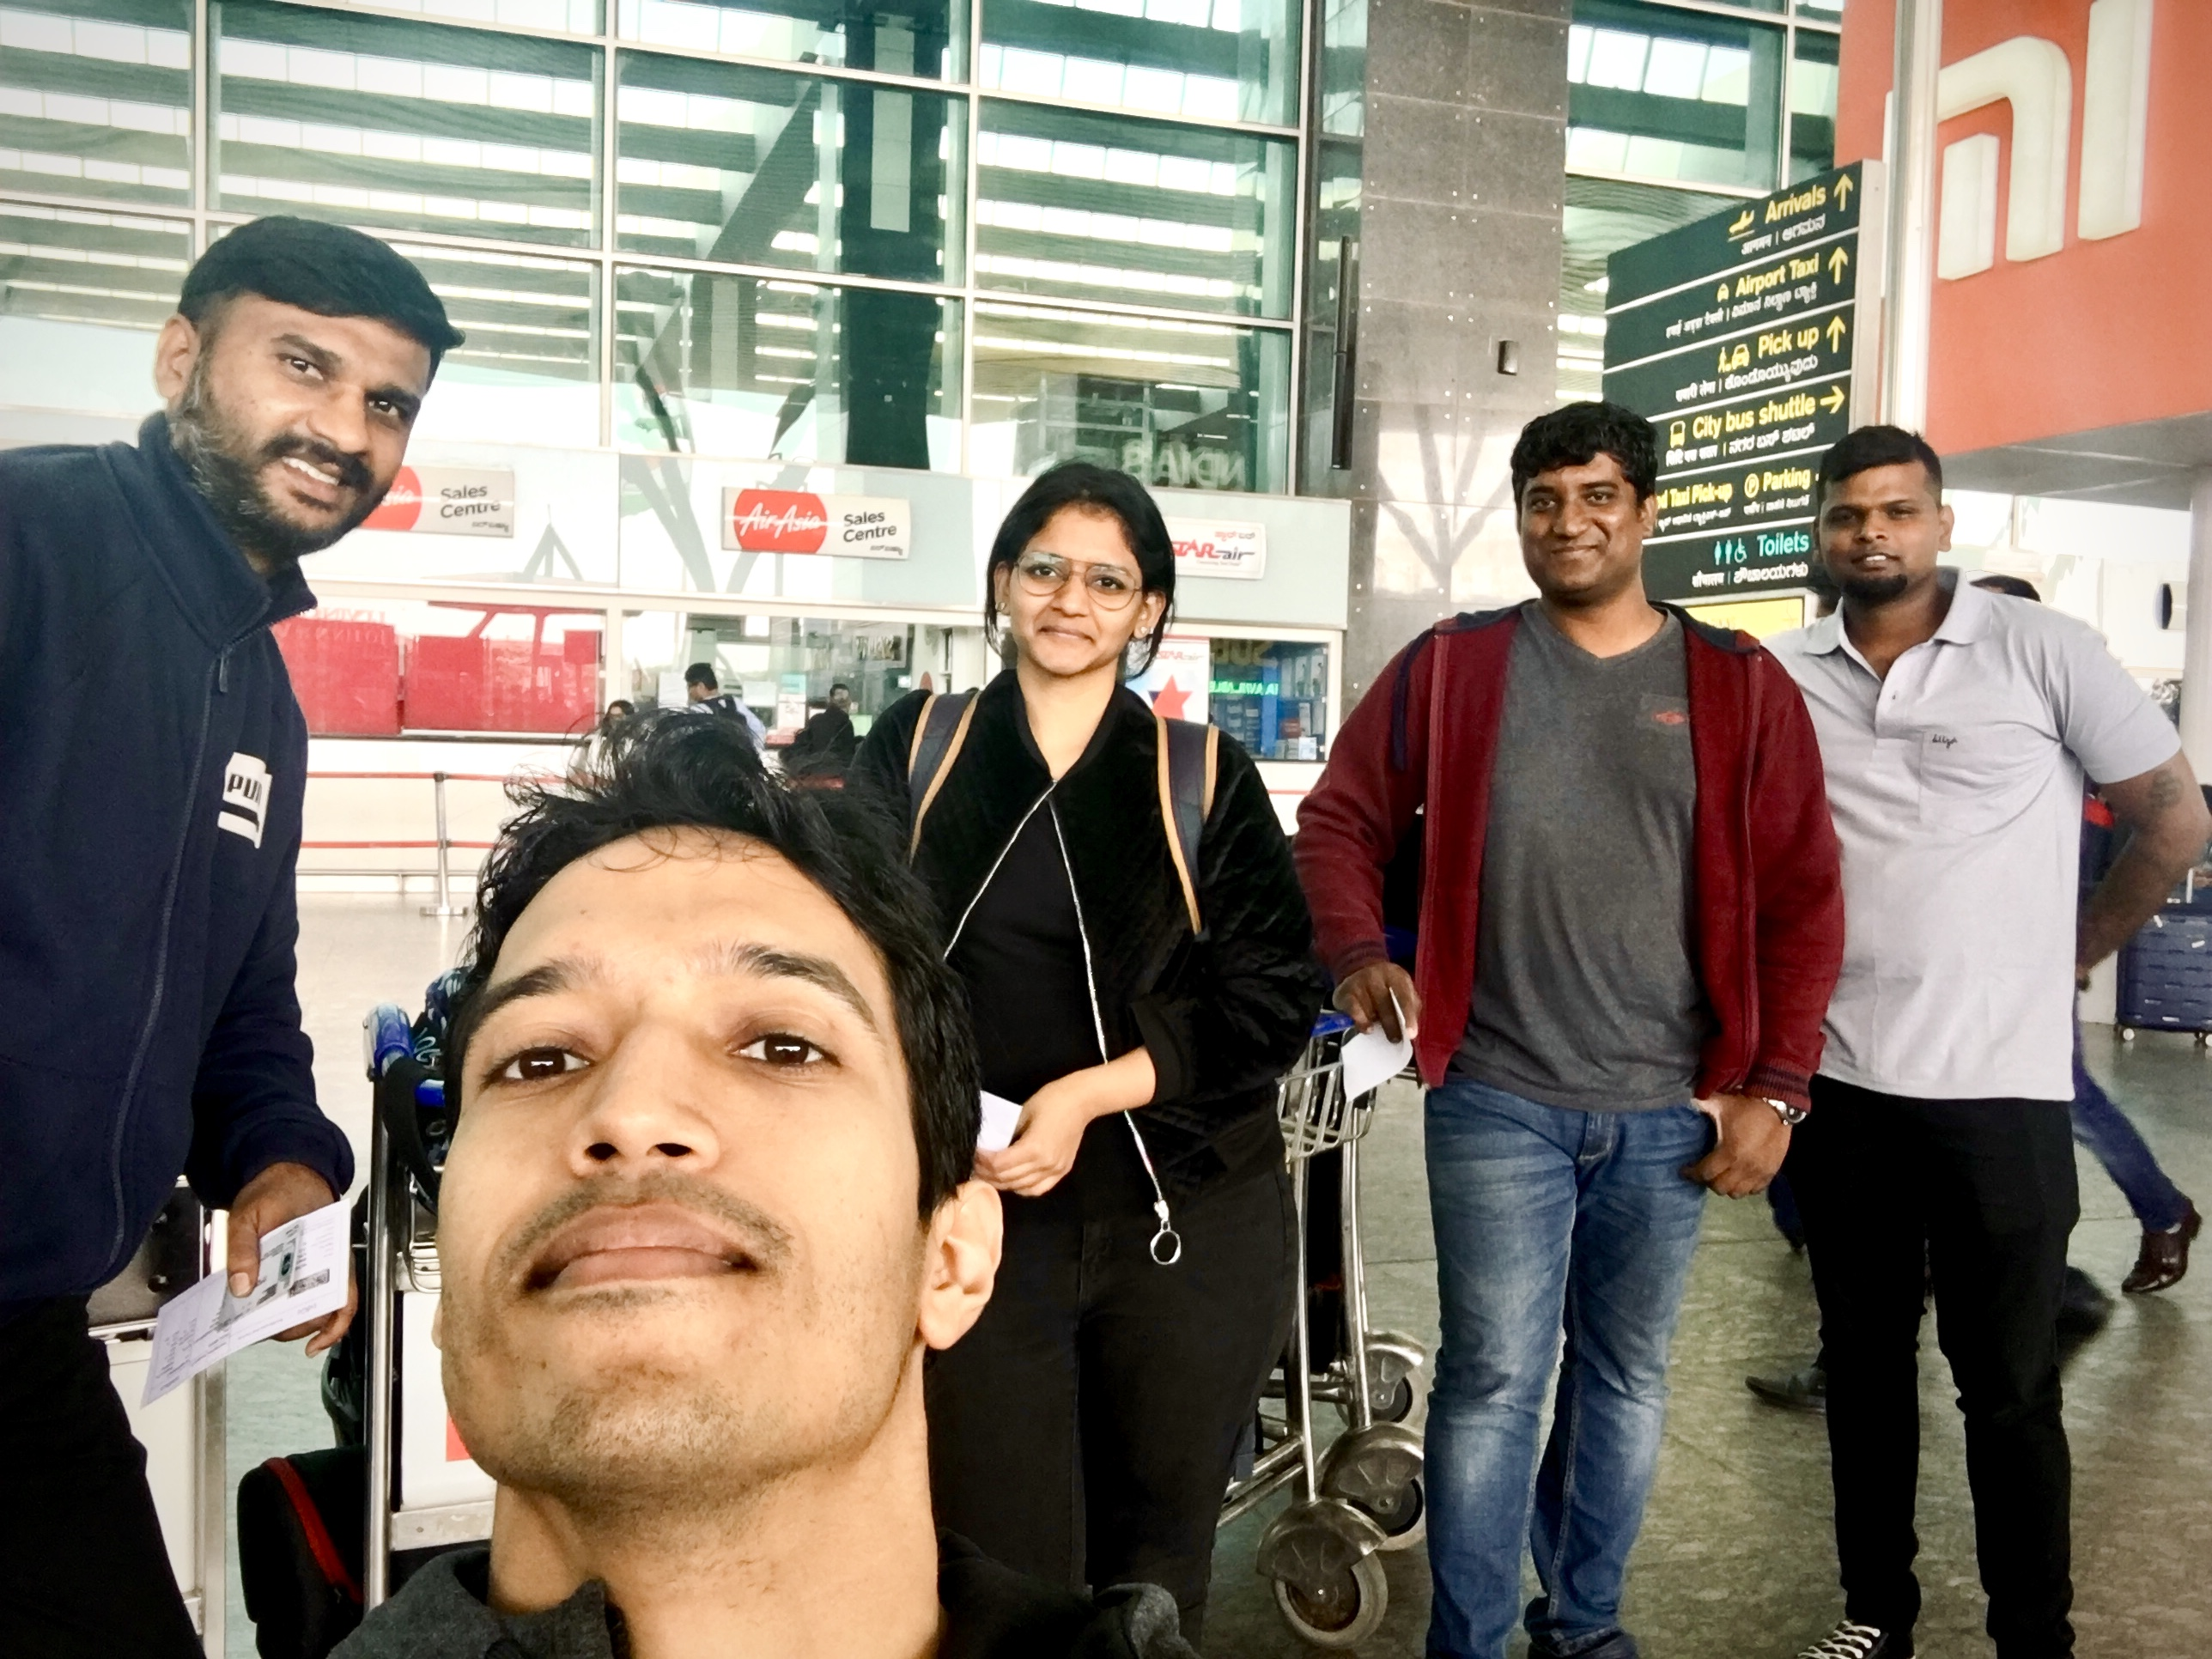 Crew at DCAM headed to Hyderabad to shoot a Corporate Film